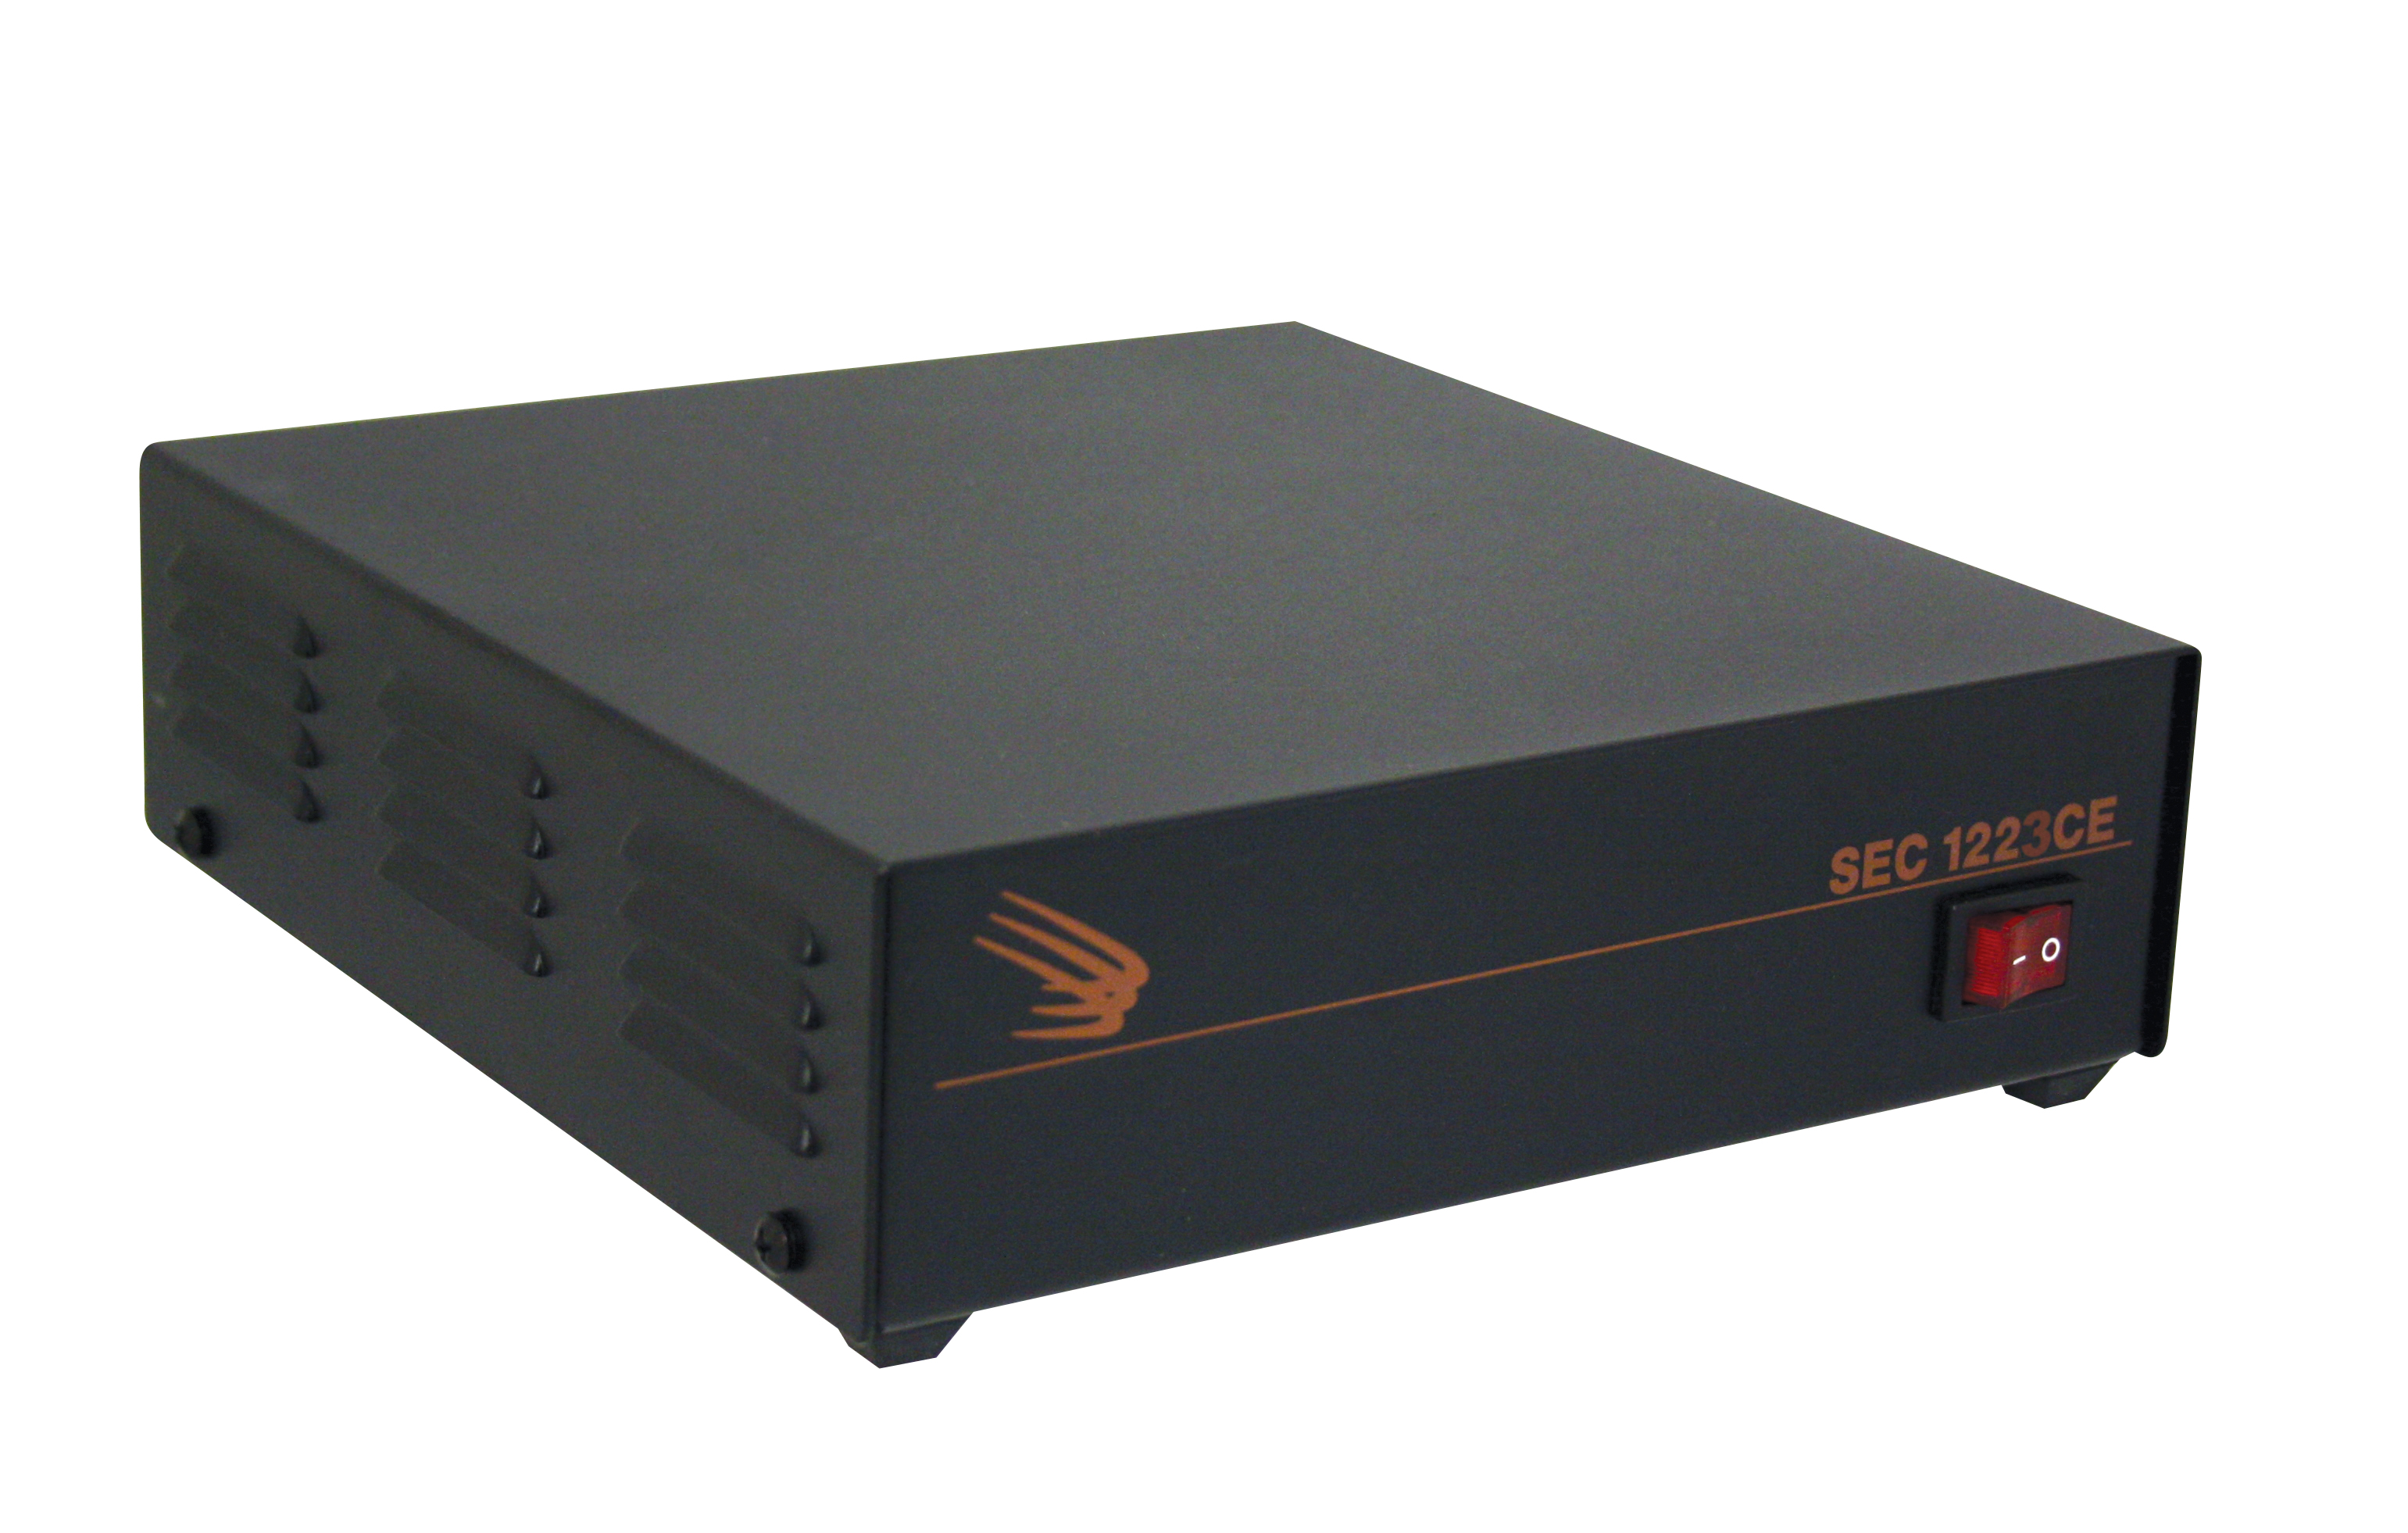 Desktop Switching DC Power Supply Input: 230 VAC, Output: 13.8 VDC, 23 Amps RoHS Compliant